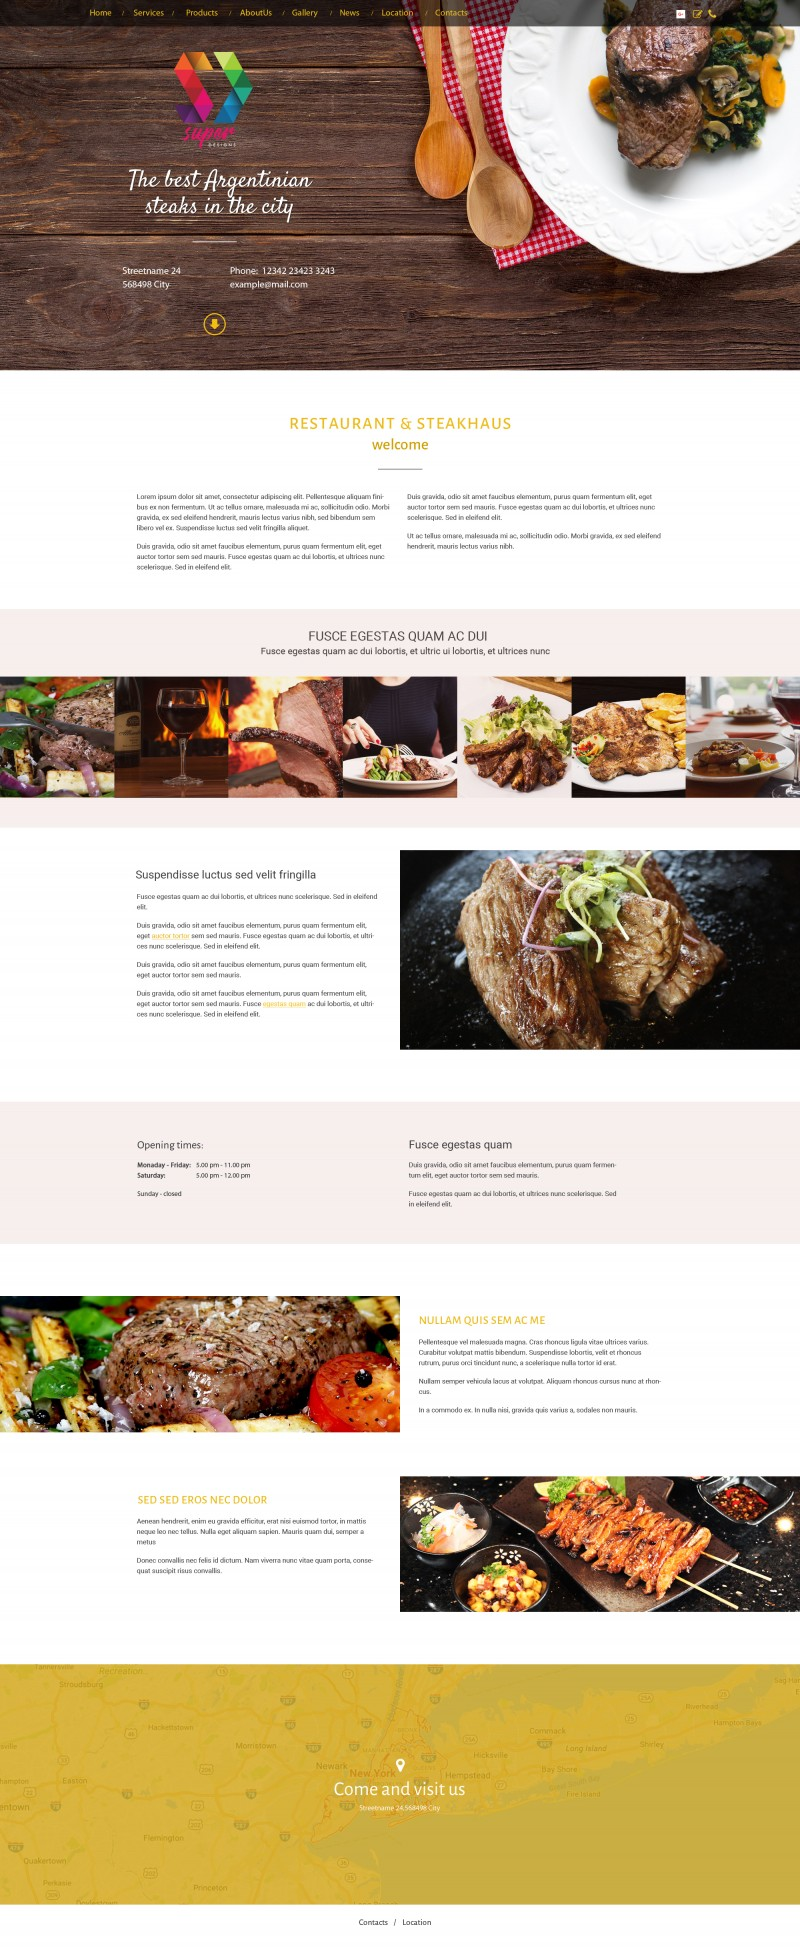 Steakhouse Restaurant HTML Template